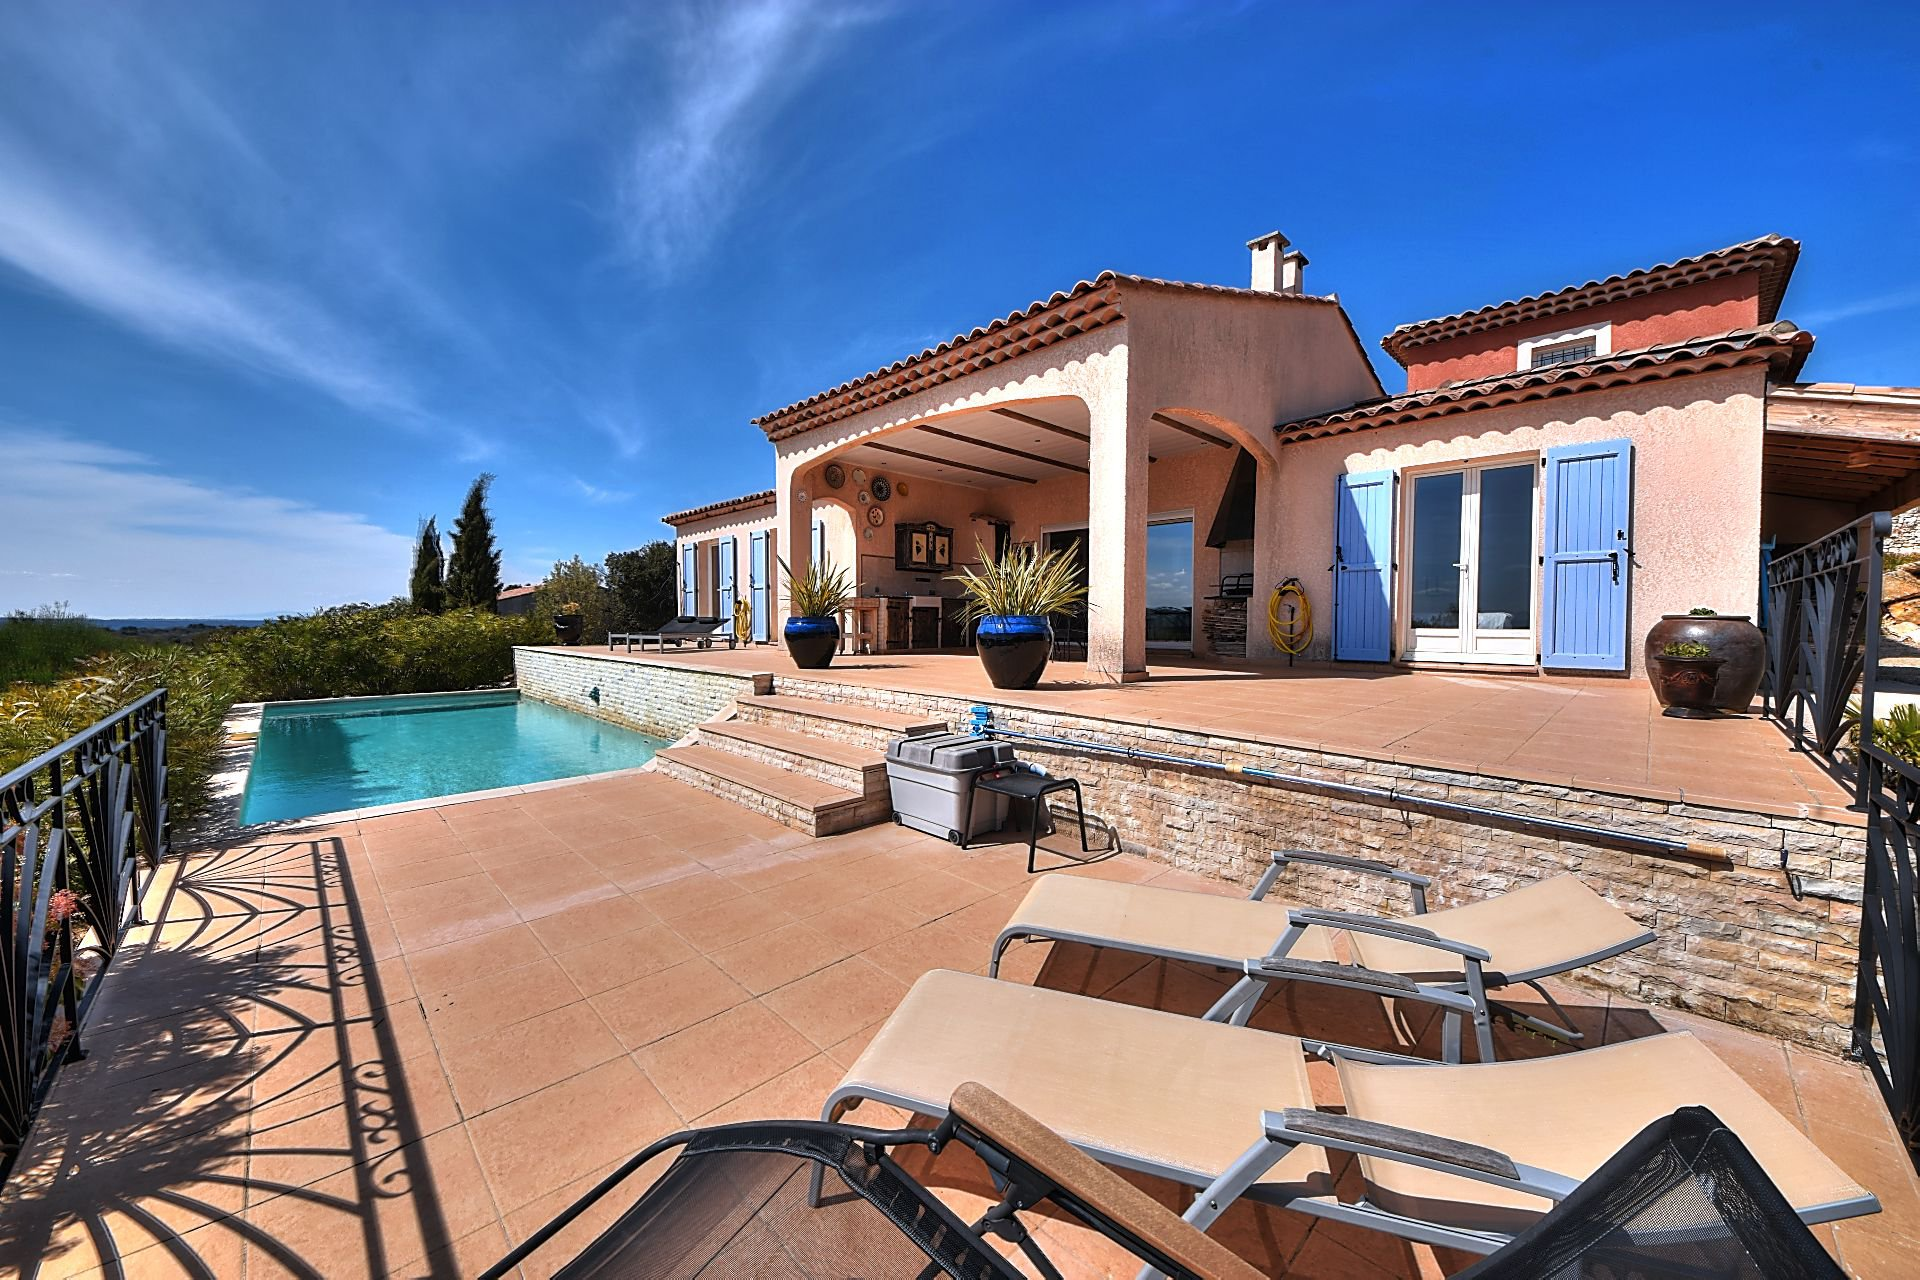 Villa 3 bedrooms, pool, panoramic view Régusse Var Provence